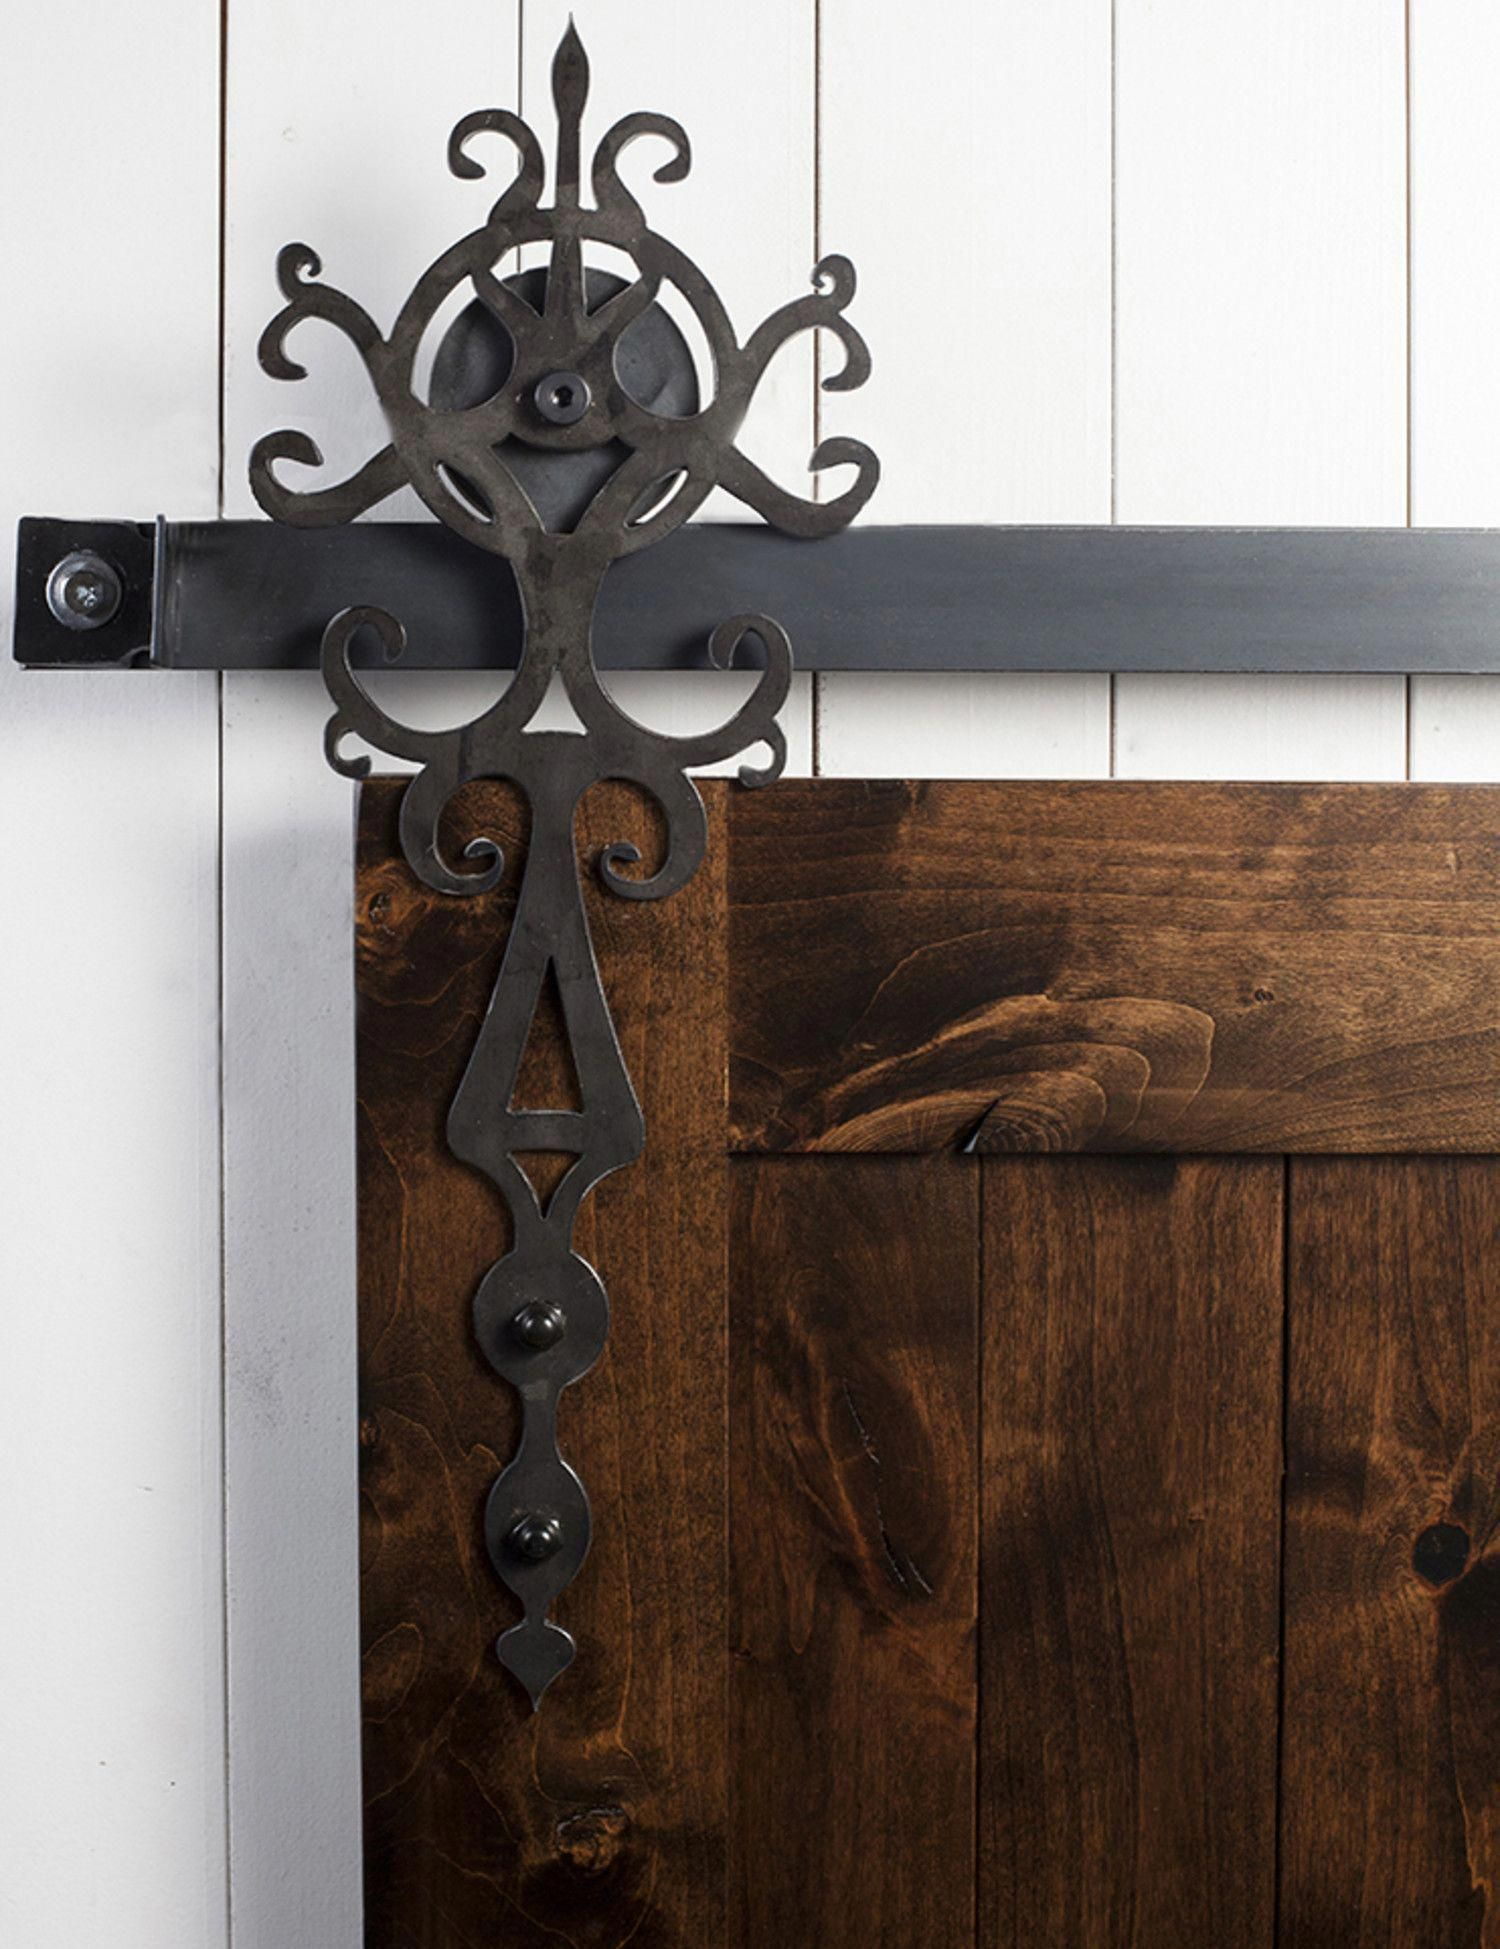 Barn Door Wheels Barn Door Wheels Interior Sliding Barn Doors For Homes Barn